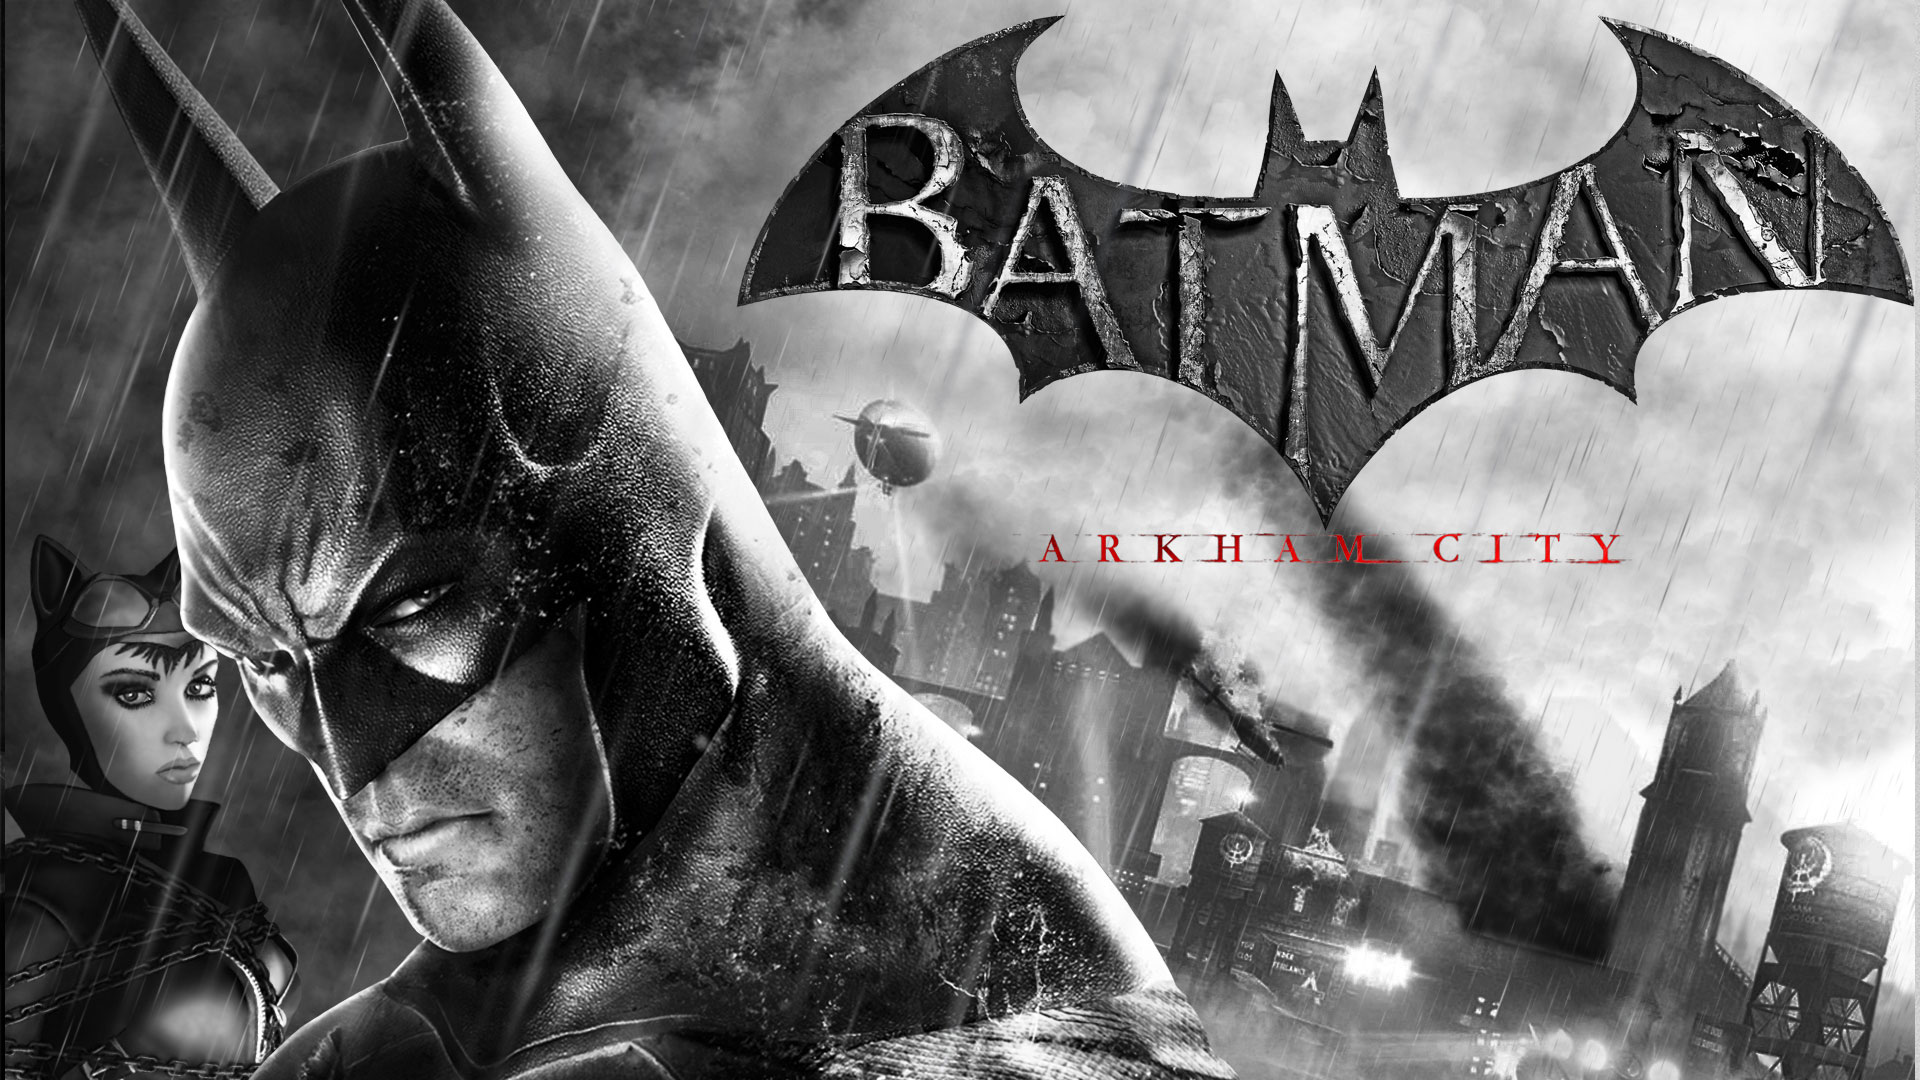 Batman Arkham City Wallpapers in HD High Resolution Page 2 1920x1080